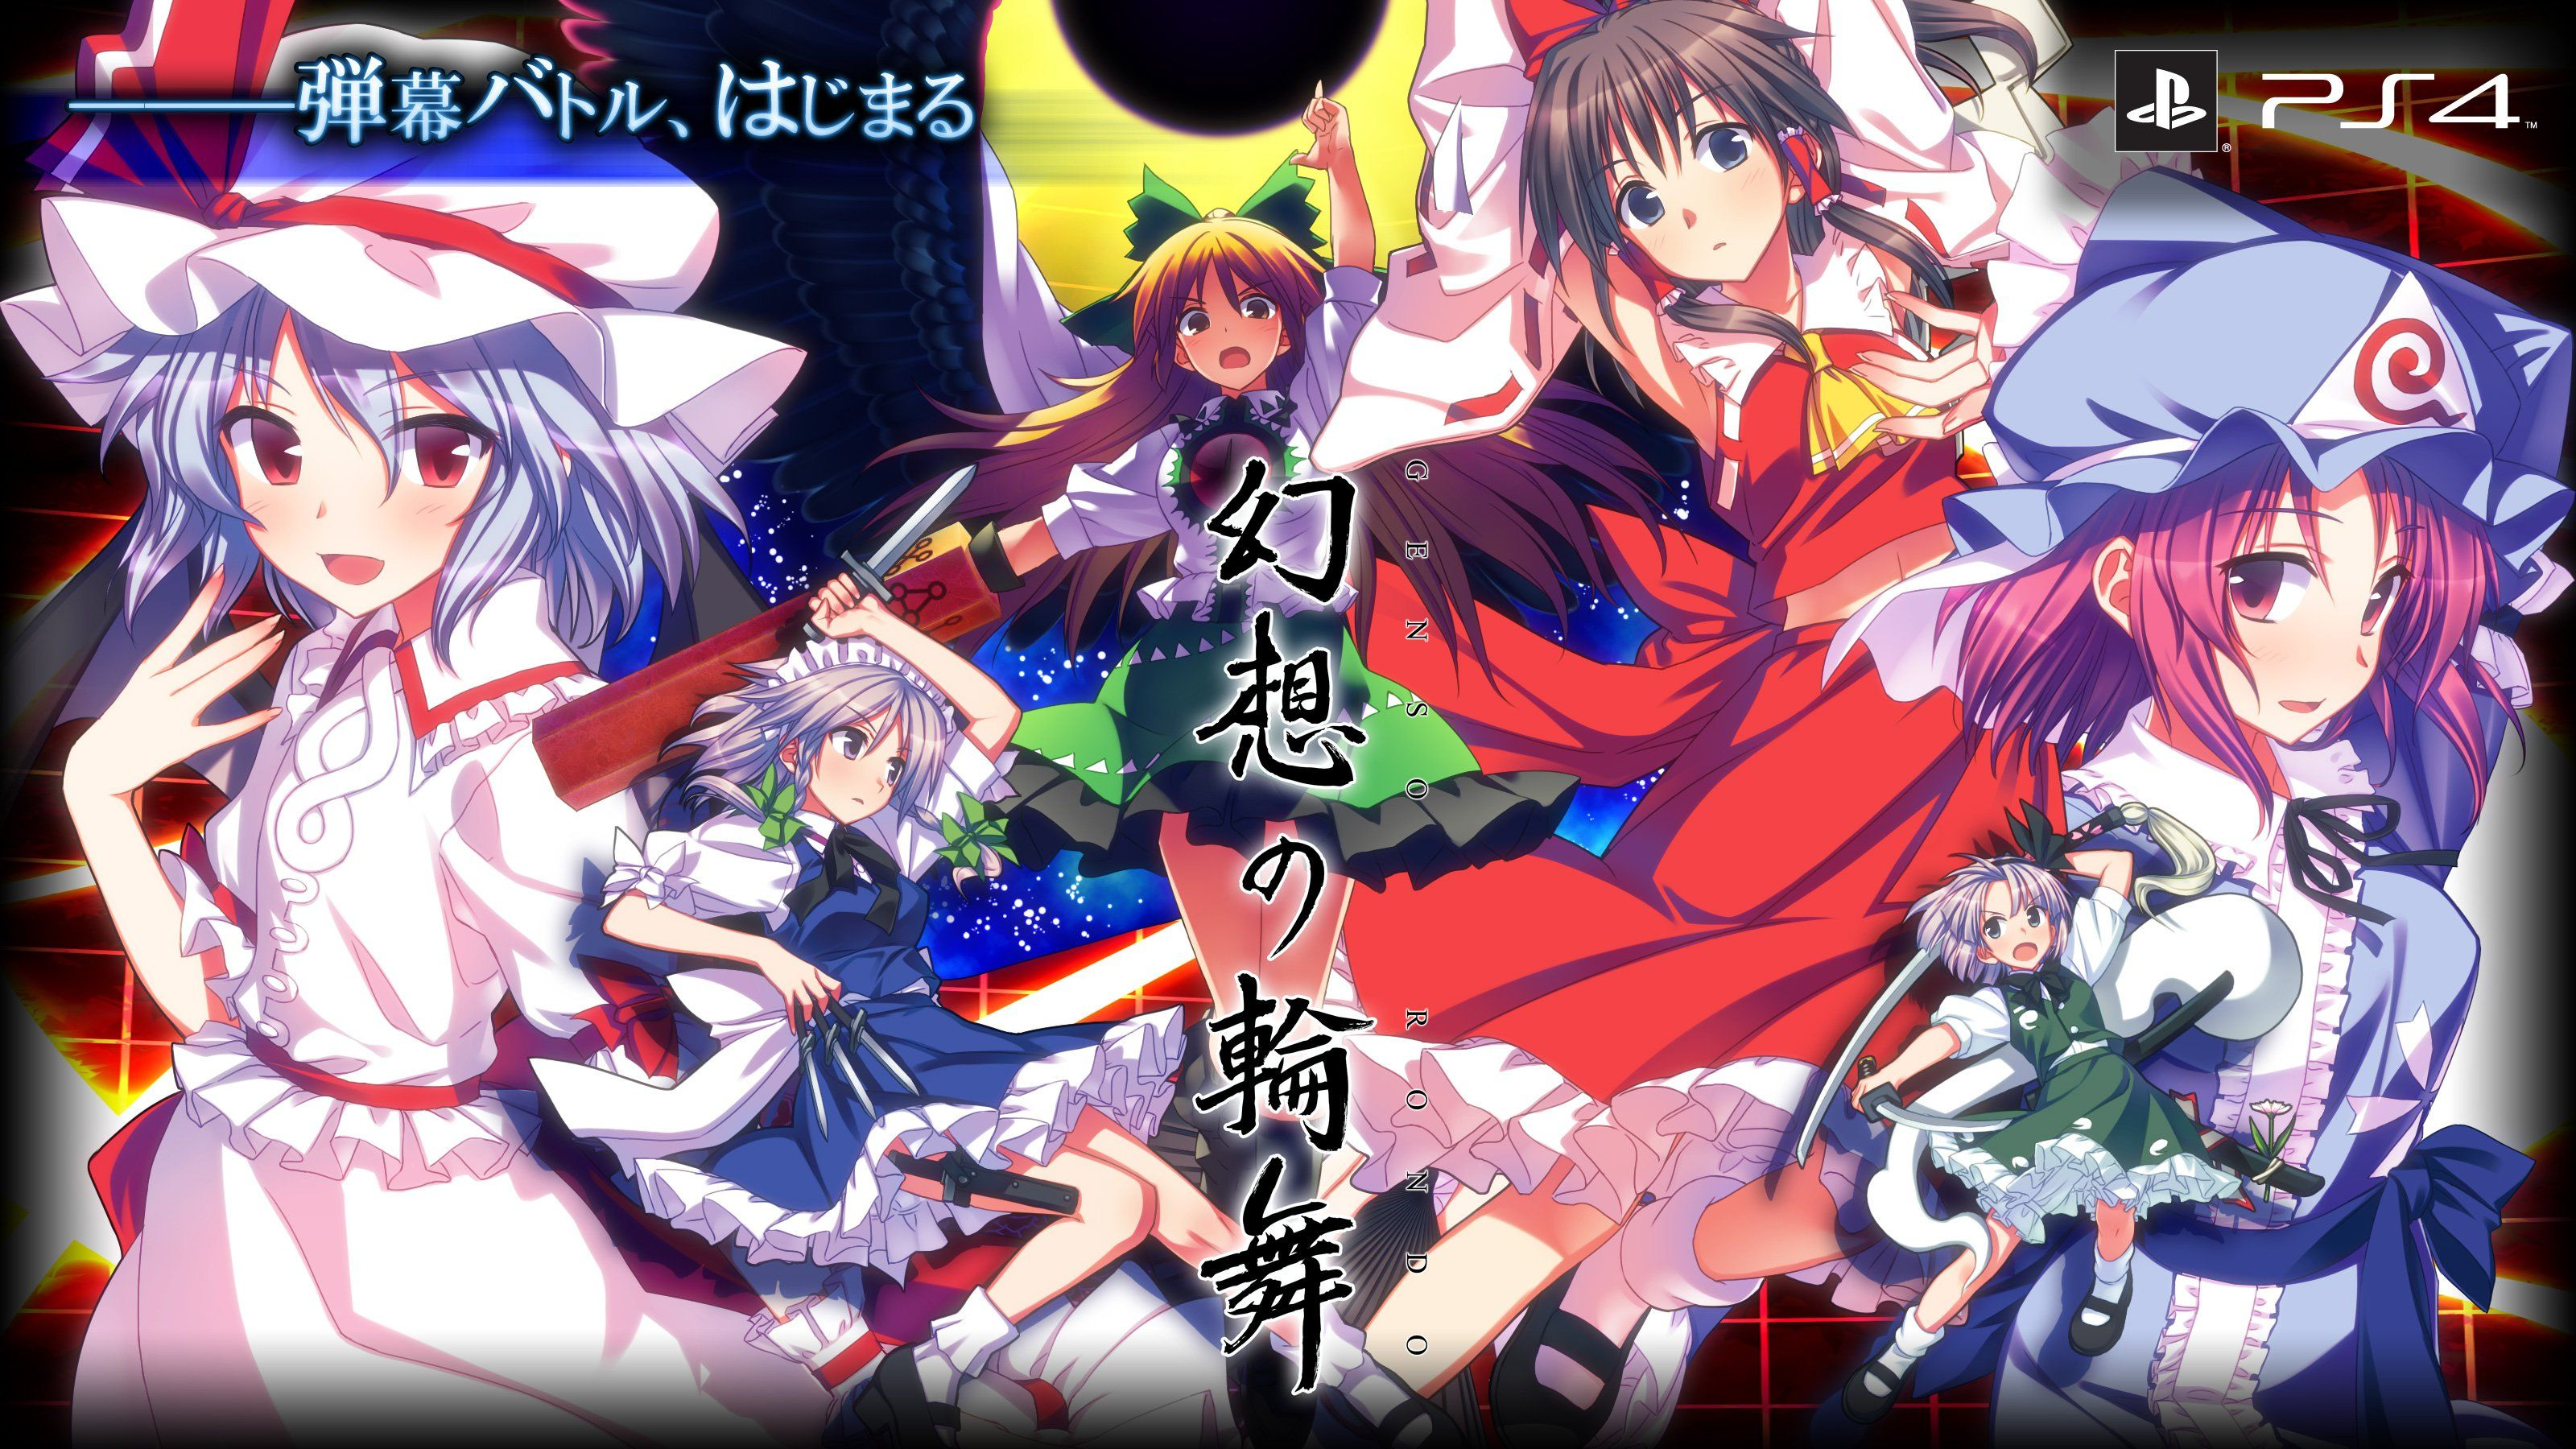 Touhou shooter coming to PS4 in the West this summer Nis